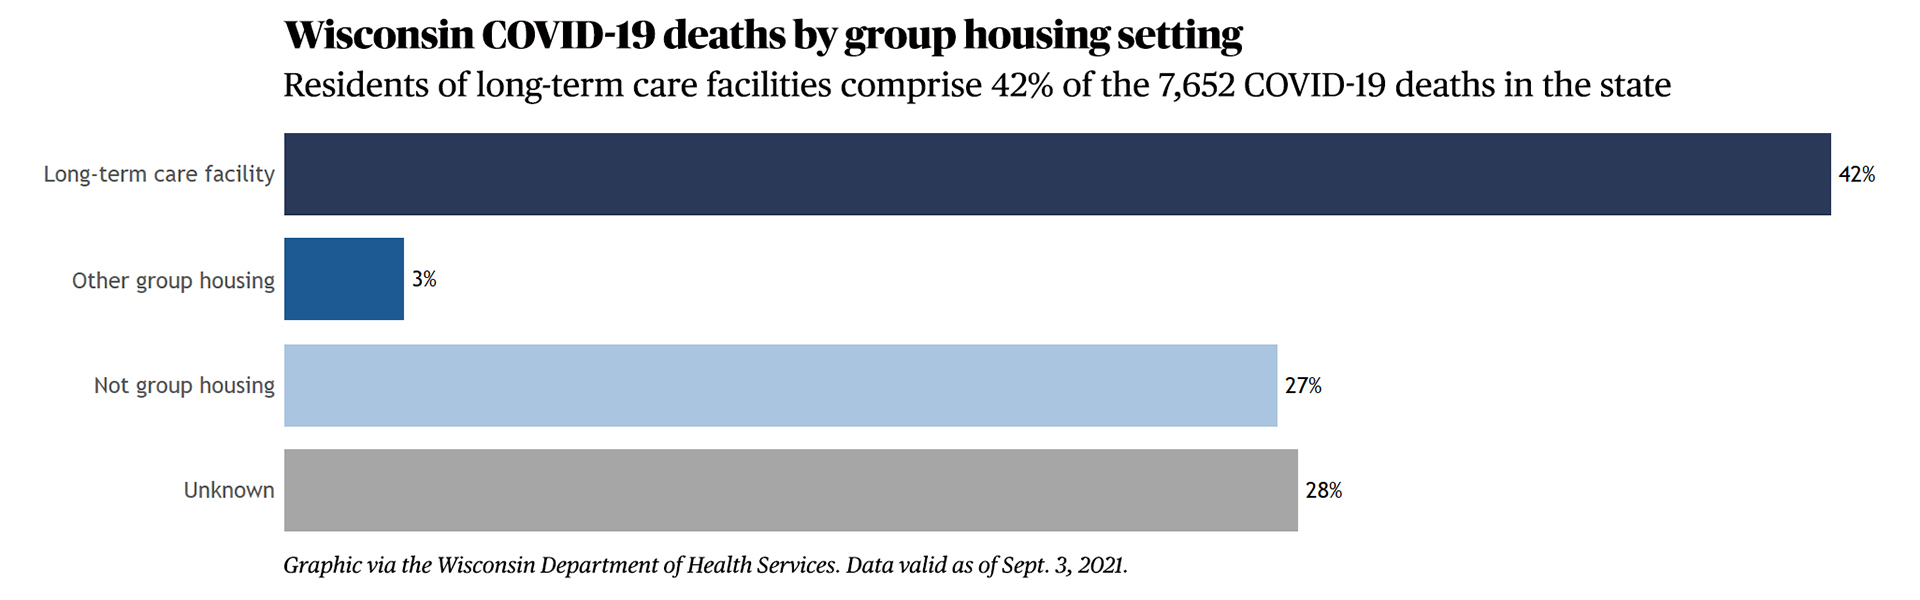 A bar chart showing Wisconsin COVID-19 deaths by group housing setting.